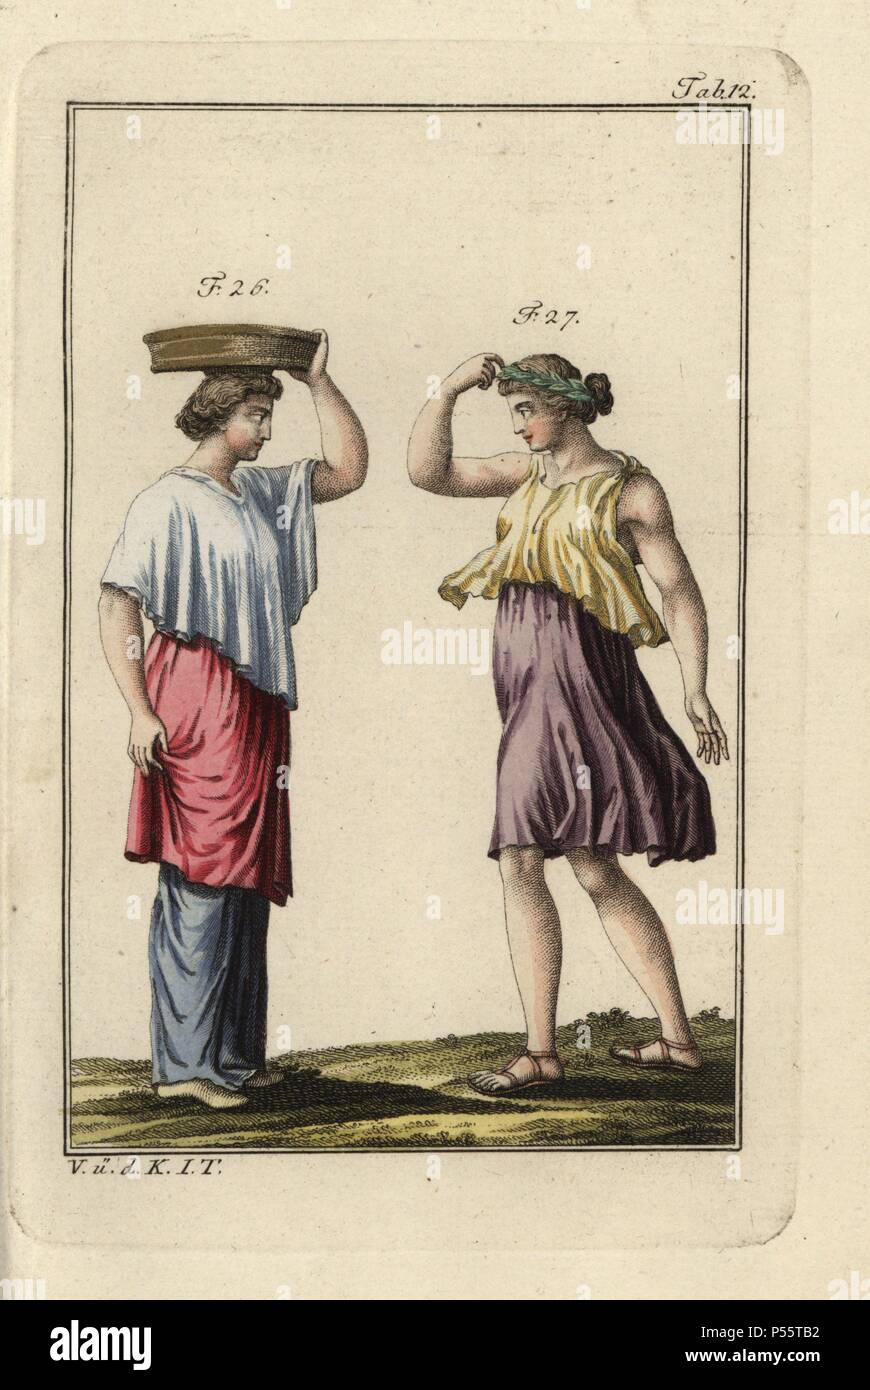 Basketweaver wearing a ricinium (short pallium) and a Greek dancer. Handcolored copperplate engraving from Robert von Spalart's 'Historical Picture of the Costumes of the Principal People of Antiquity and of the Middle Ages' (1796). - Stock Image